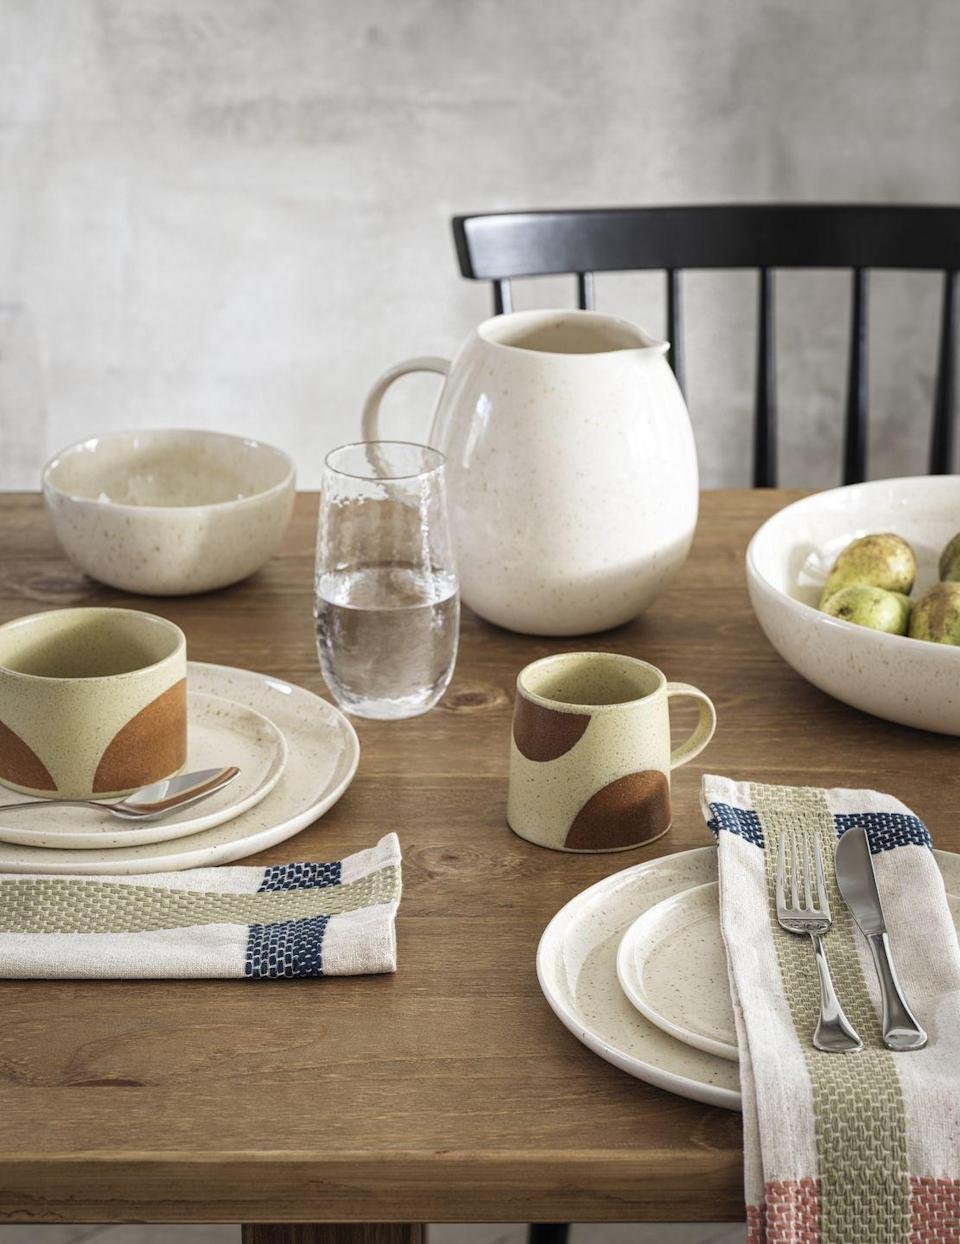 <p>'The tableware, which is all handmade in Portugal using traditional manufacturing techniques, draws inspiration from tactile, organic forms,' adds David Hutcheson, Senior Homewares Designer</p><p>'Glazed with a speckled reactive finish, each piece is completely unique and individual.'</p><p>With mugs for just £3 and gorgeous linen napkins, there's no excuse not to add some to your kitchen cupboards. </p>